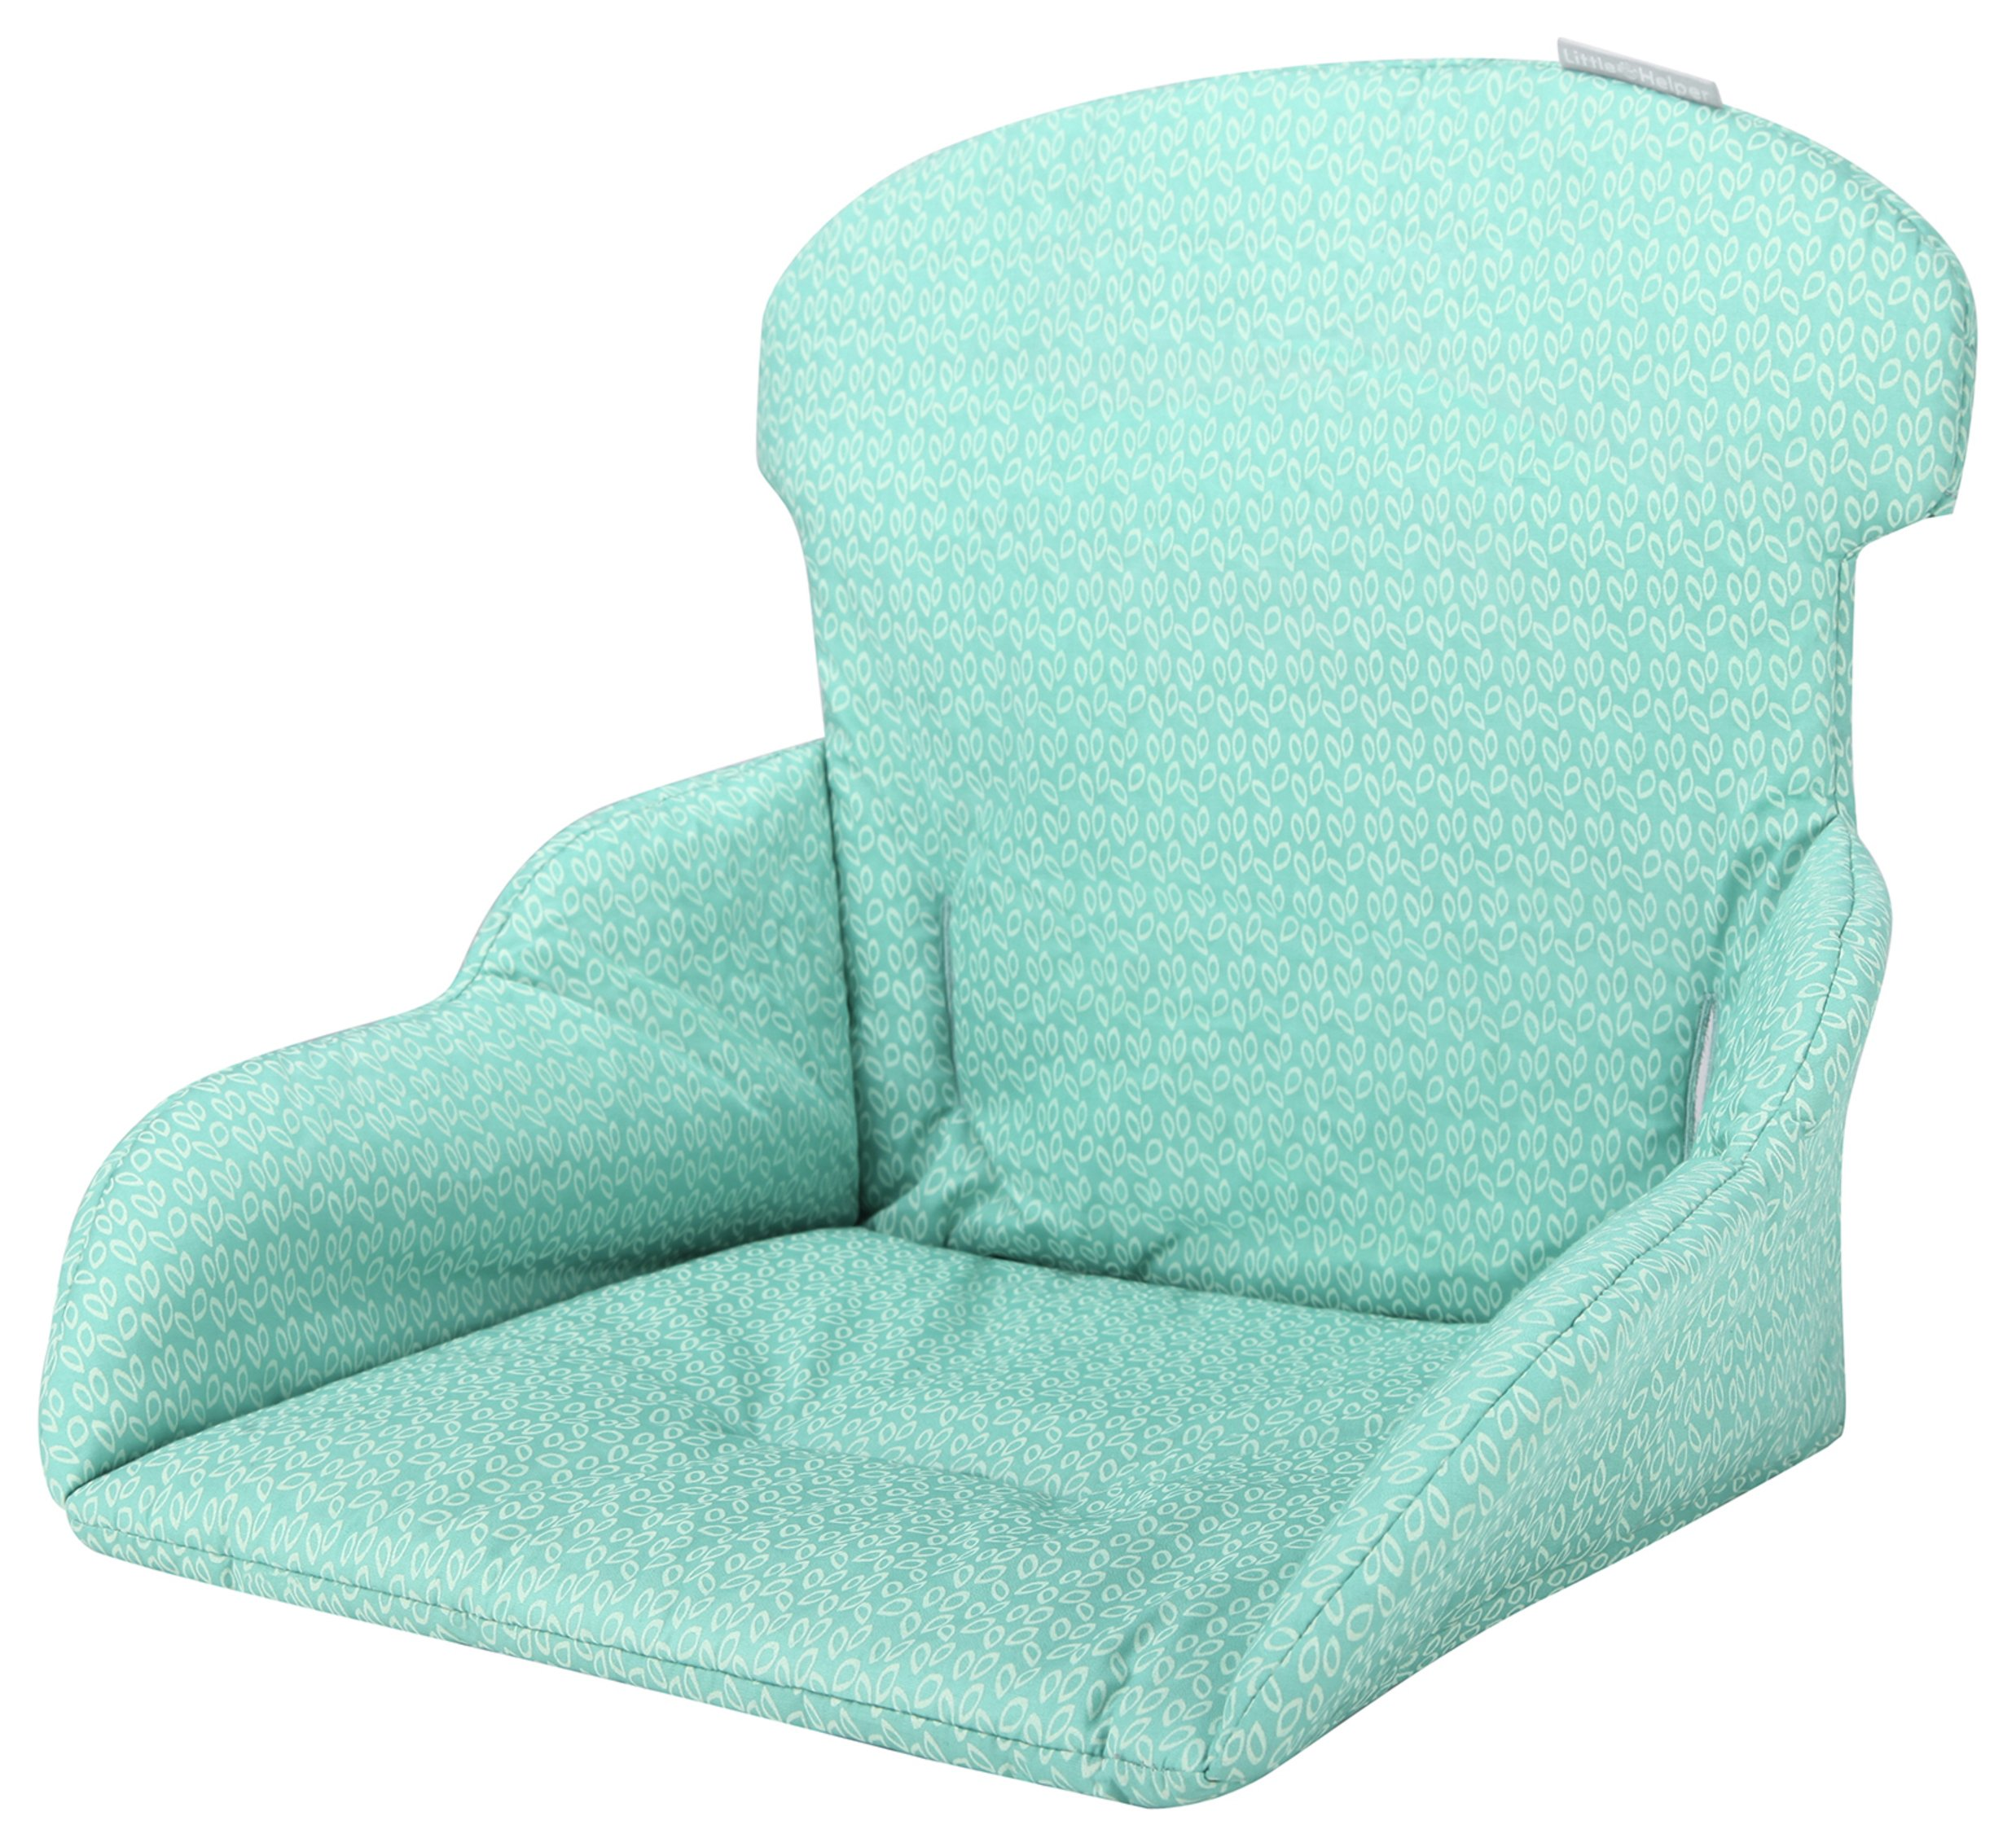 Little Helper FunPod High Chair Cushion - Turquosie